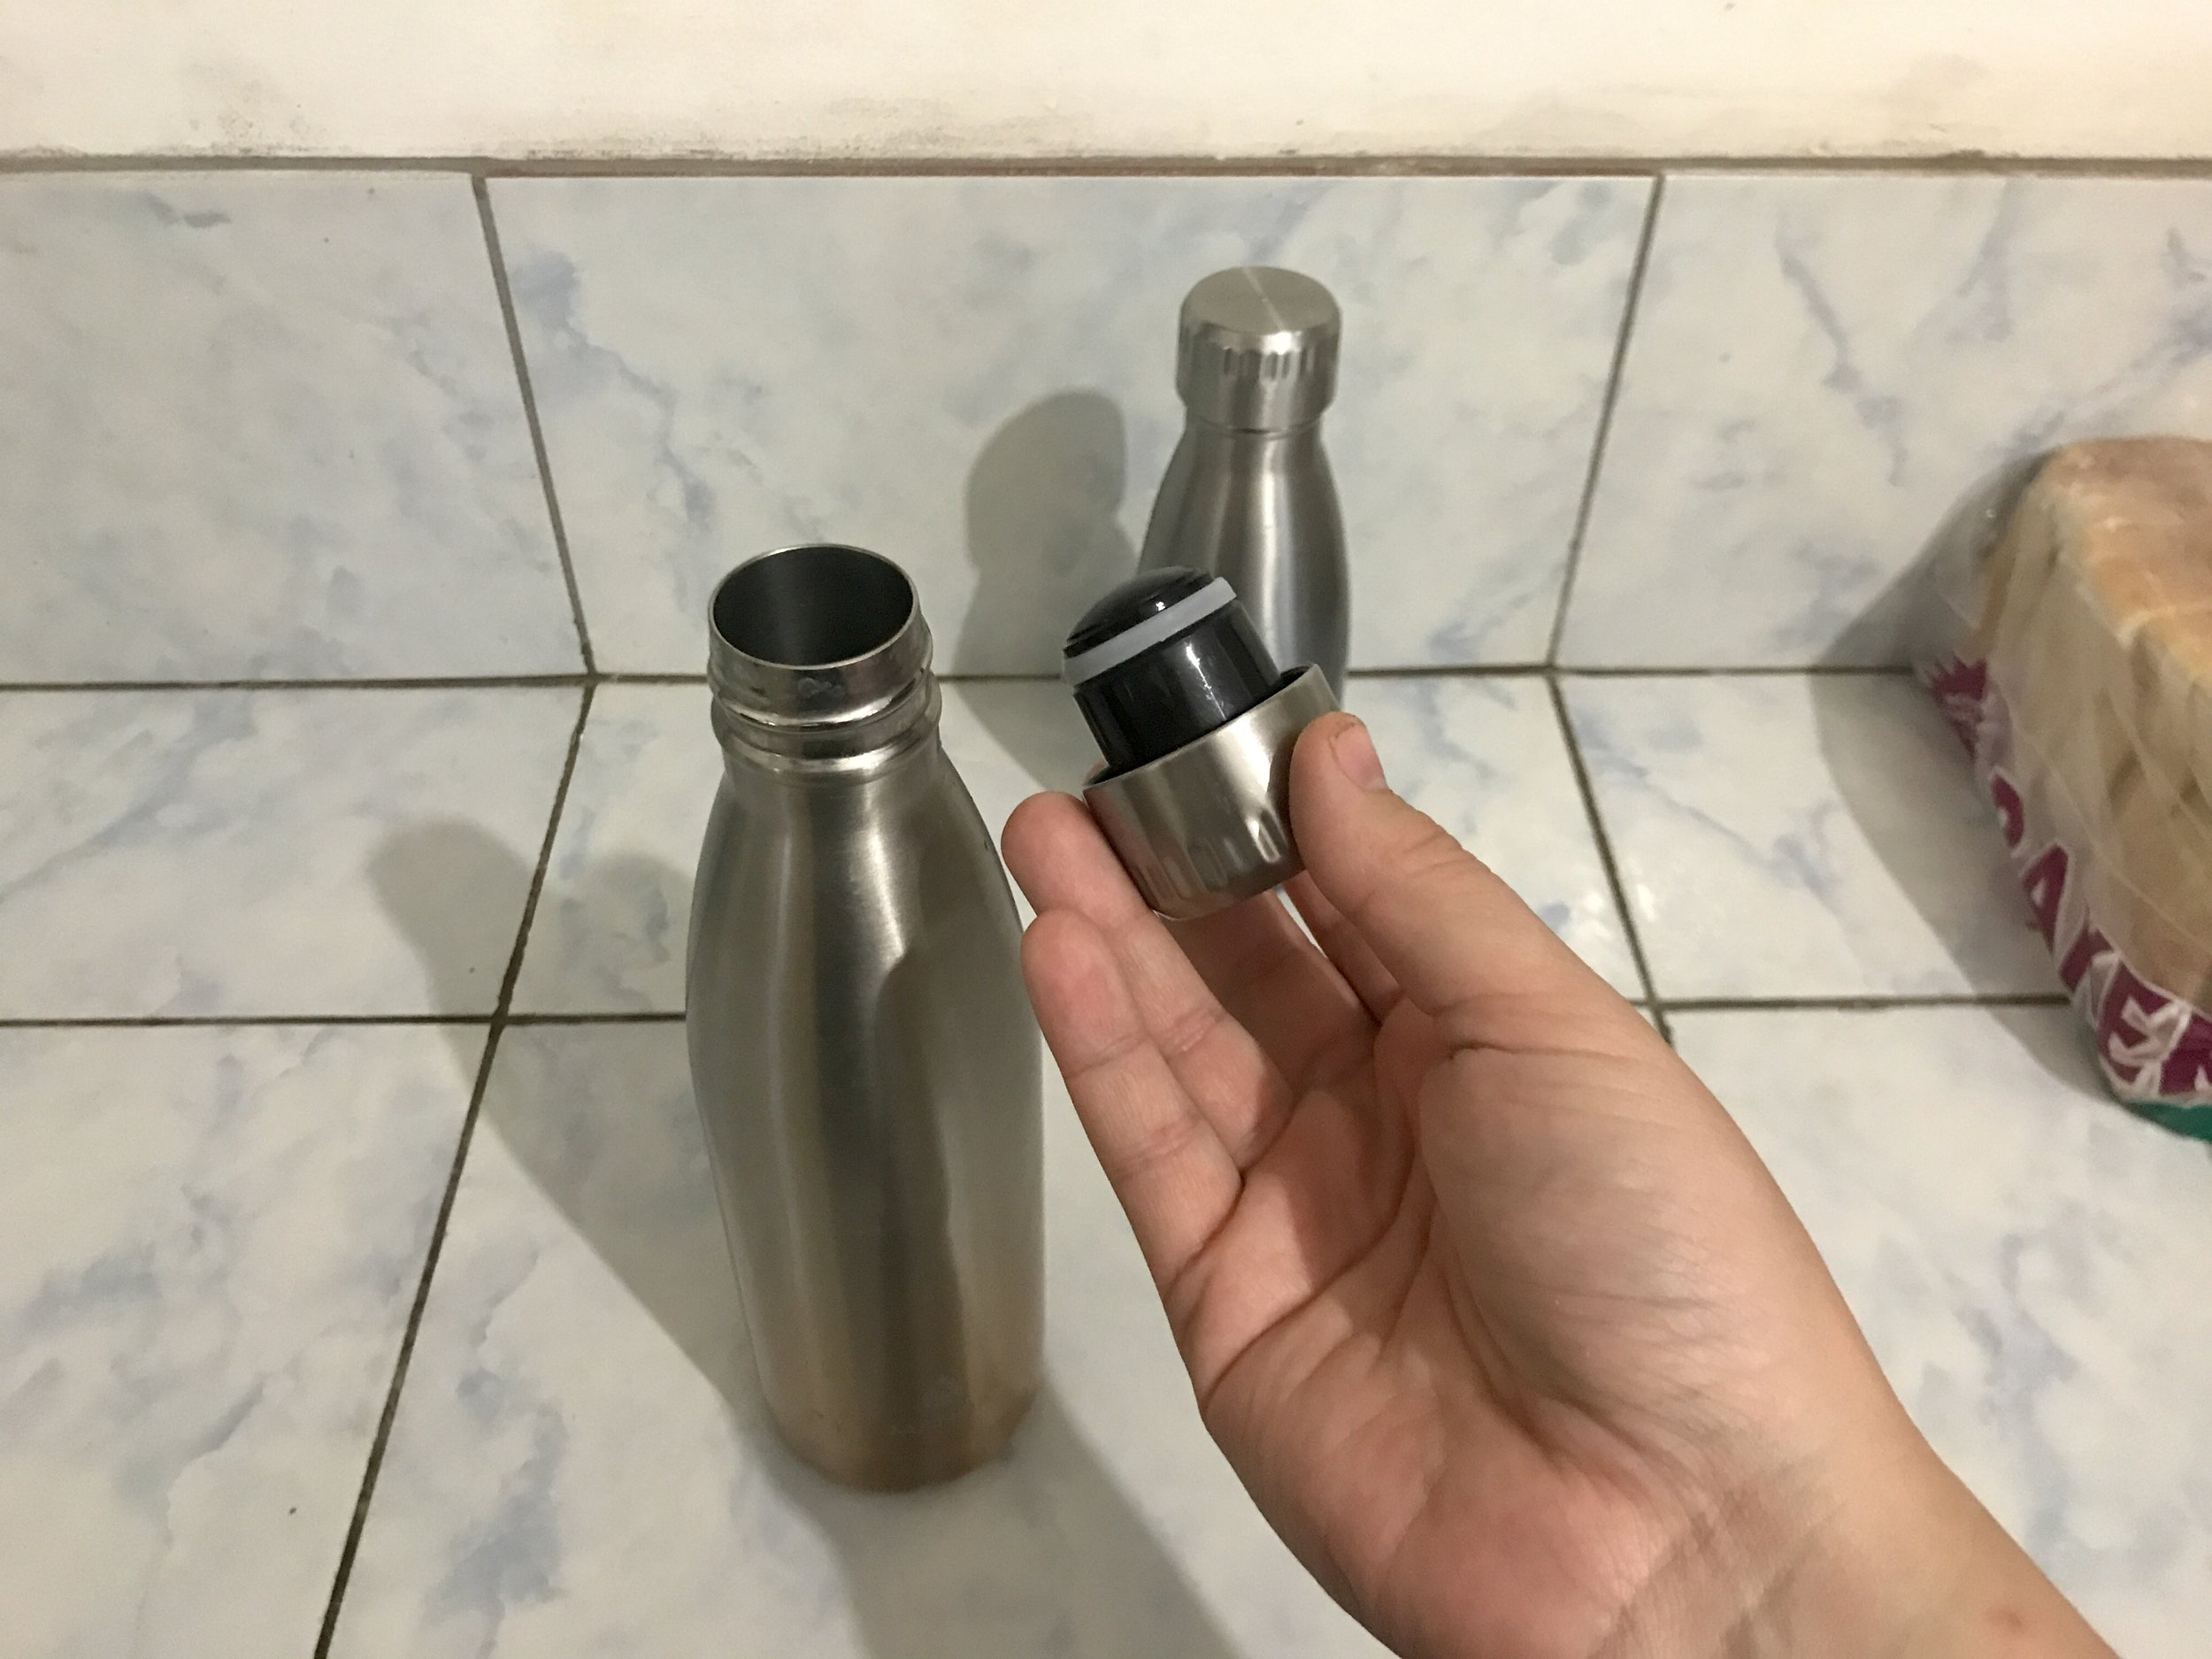 The caps create a vacuum seal and they take up some space. Don't make my mistake and fill the bottle up too much or you will spill boiling hot water everywhere! Seriously, it's every time with me! Fill it up only to the neck so you get a better seal with no mess.